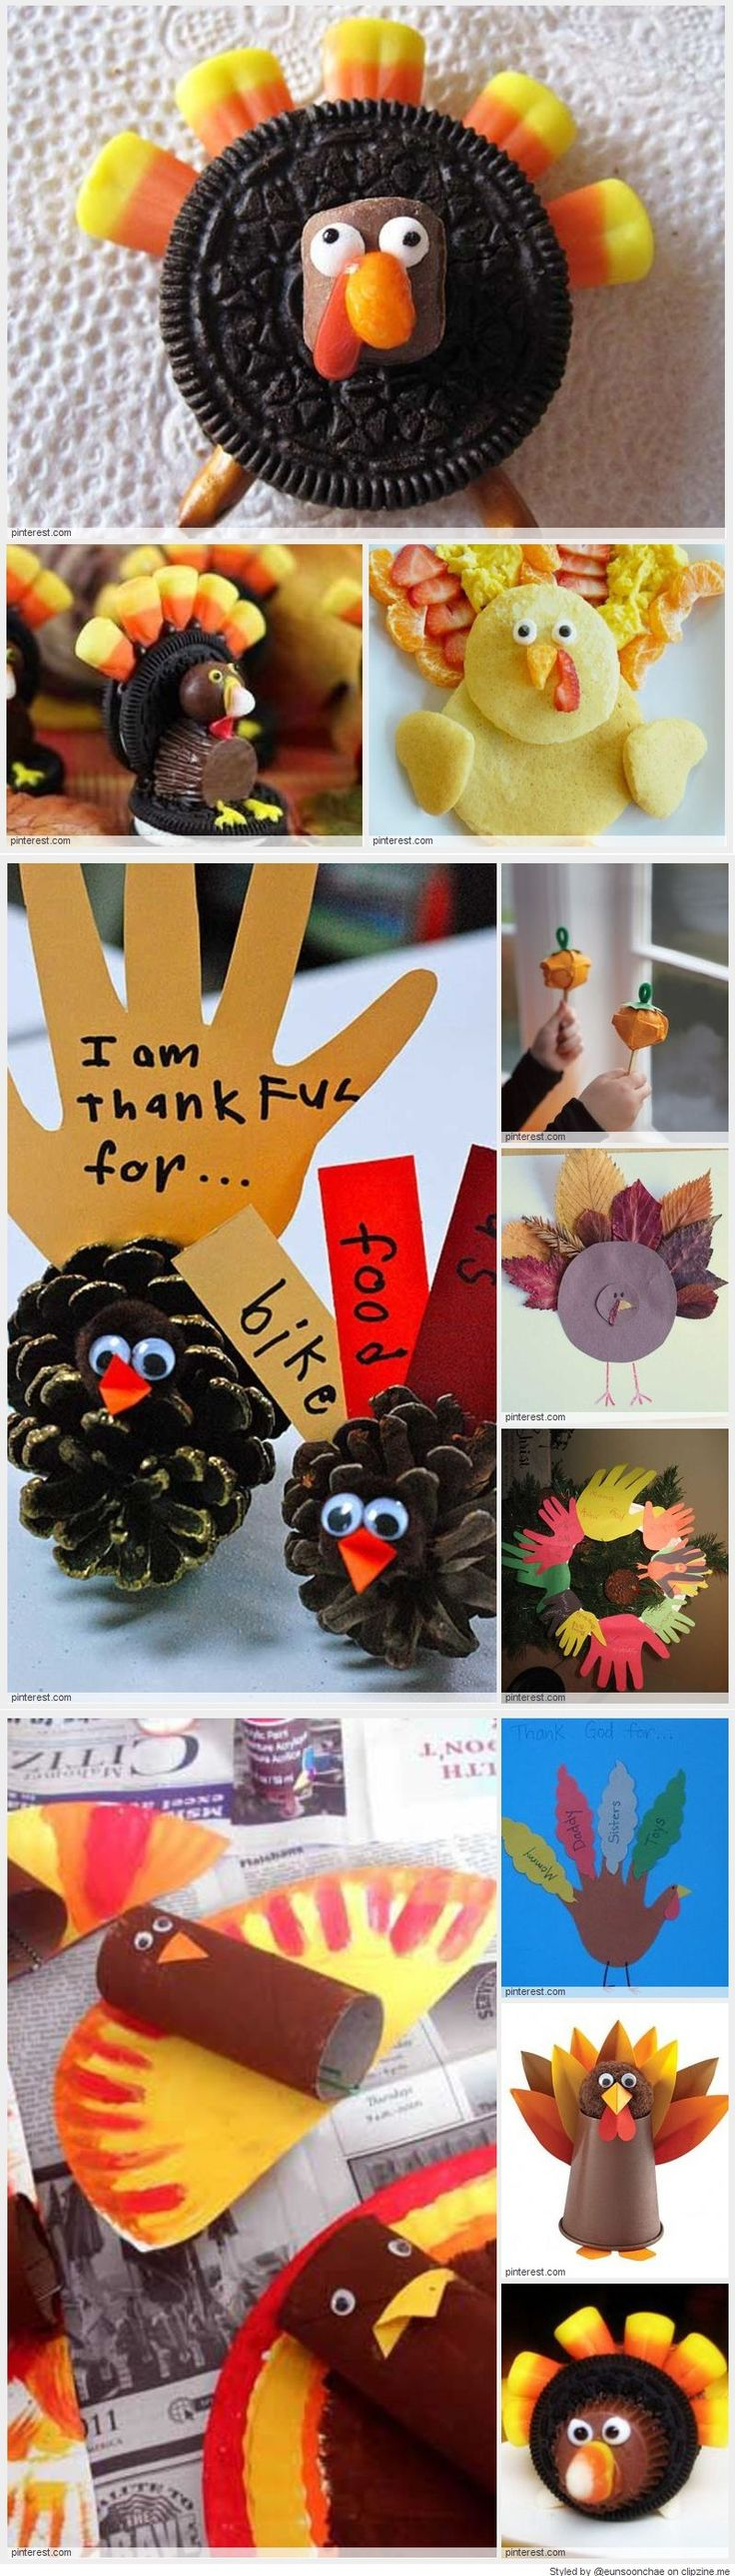 24 best images about church fall craft ideas etc on for Thanksgiving craft ideas pinterest